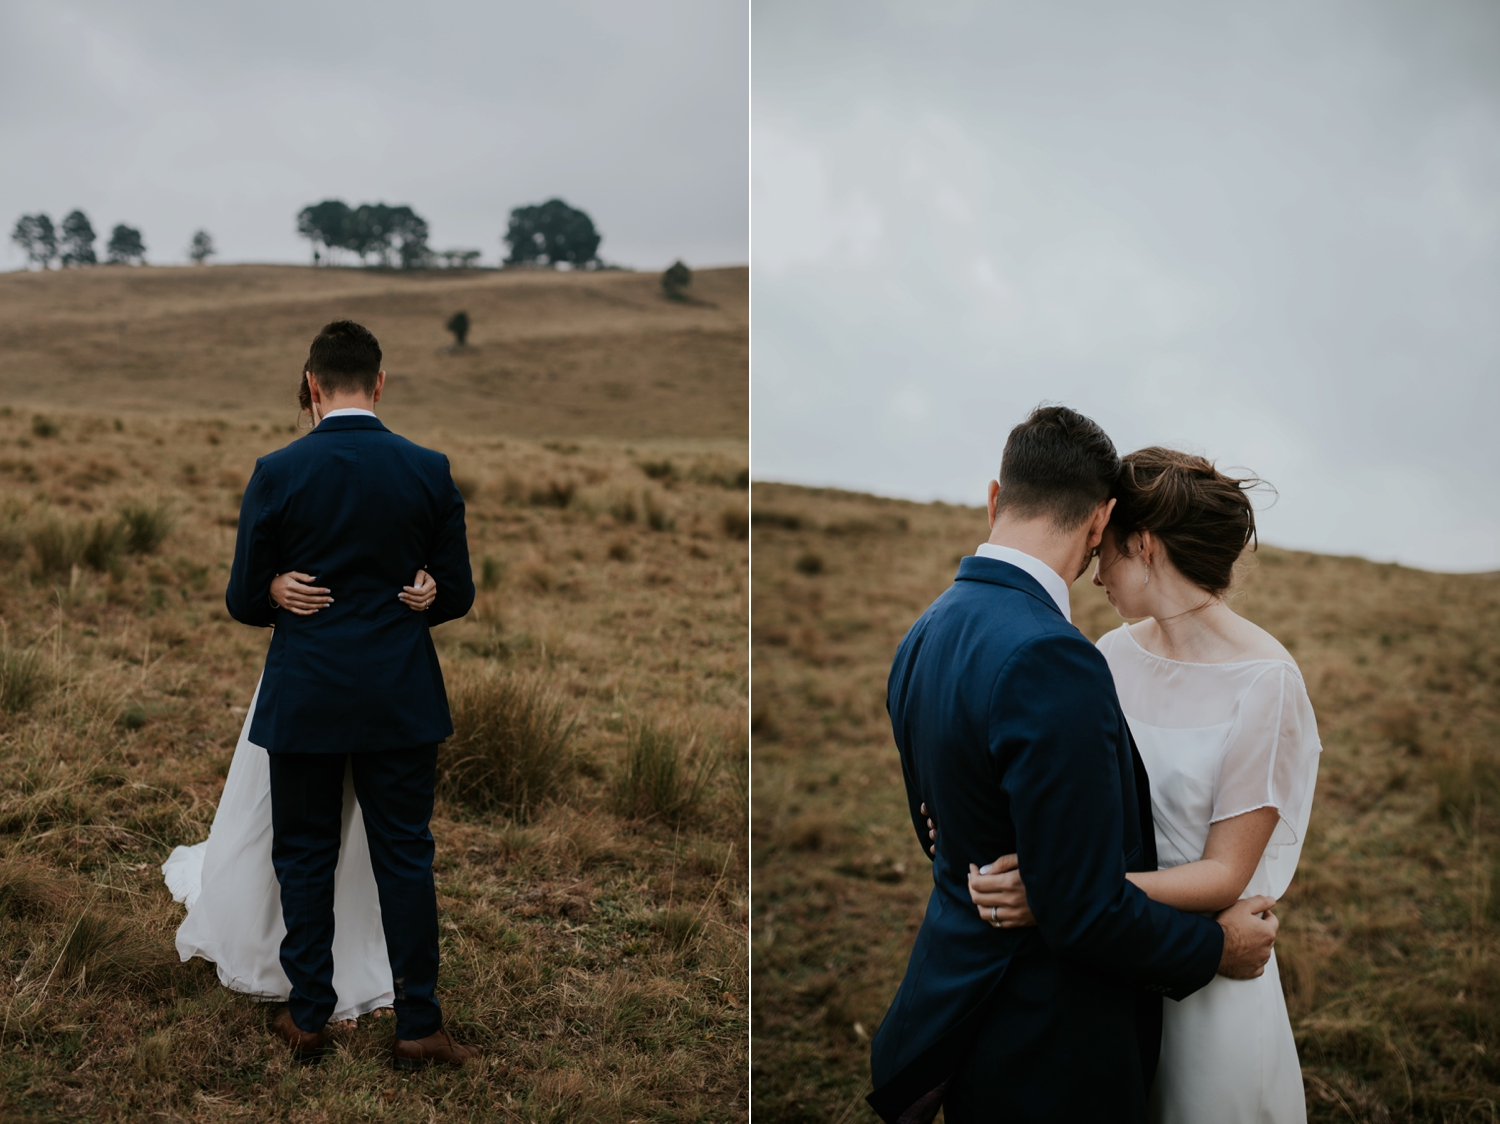 Alternative Wedding Portraits by Photojournalistic Vancouver Wedding Photographer in Nature